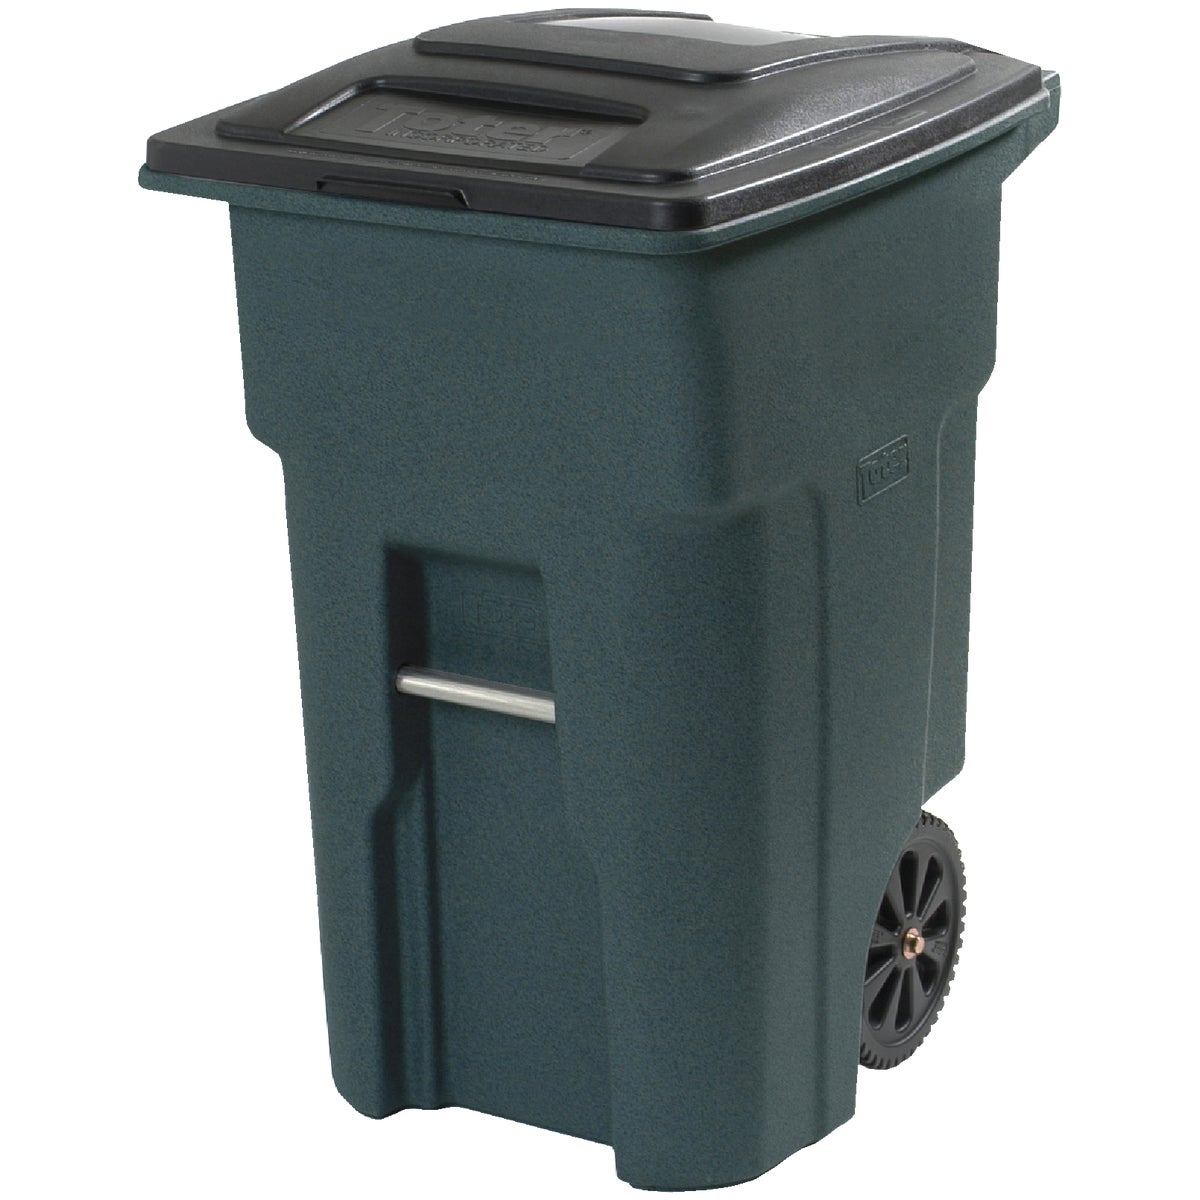 32GAL 2-WHEEL TRASH CAN - 025532-D1GRS by Toter